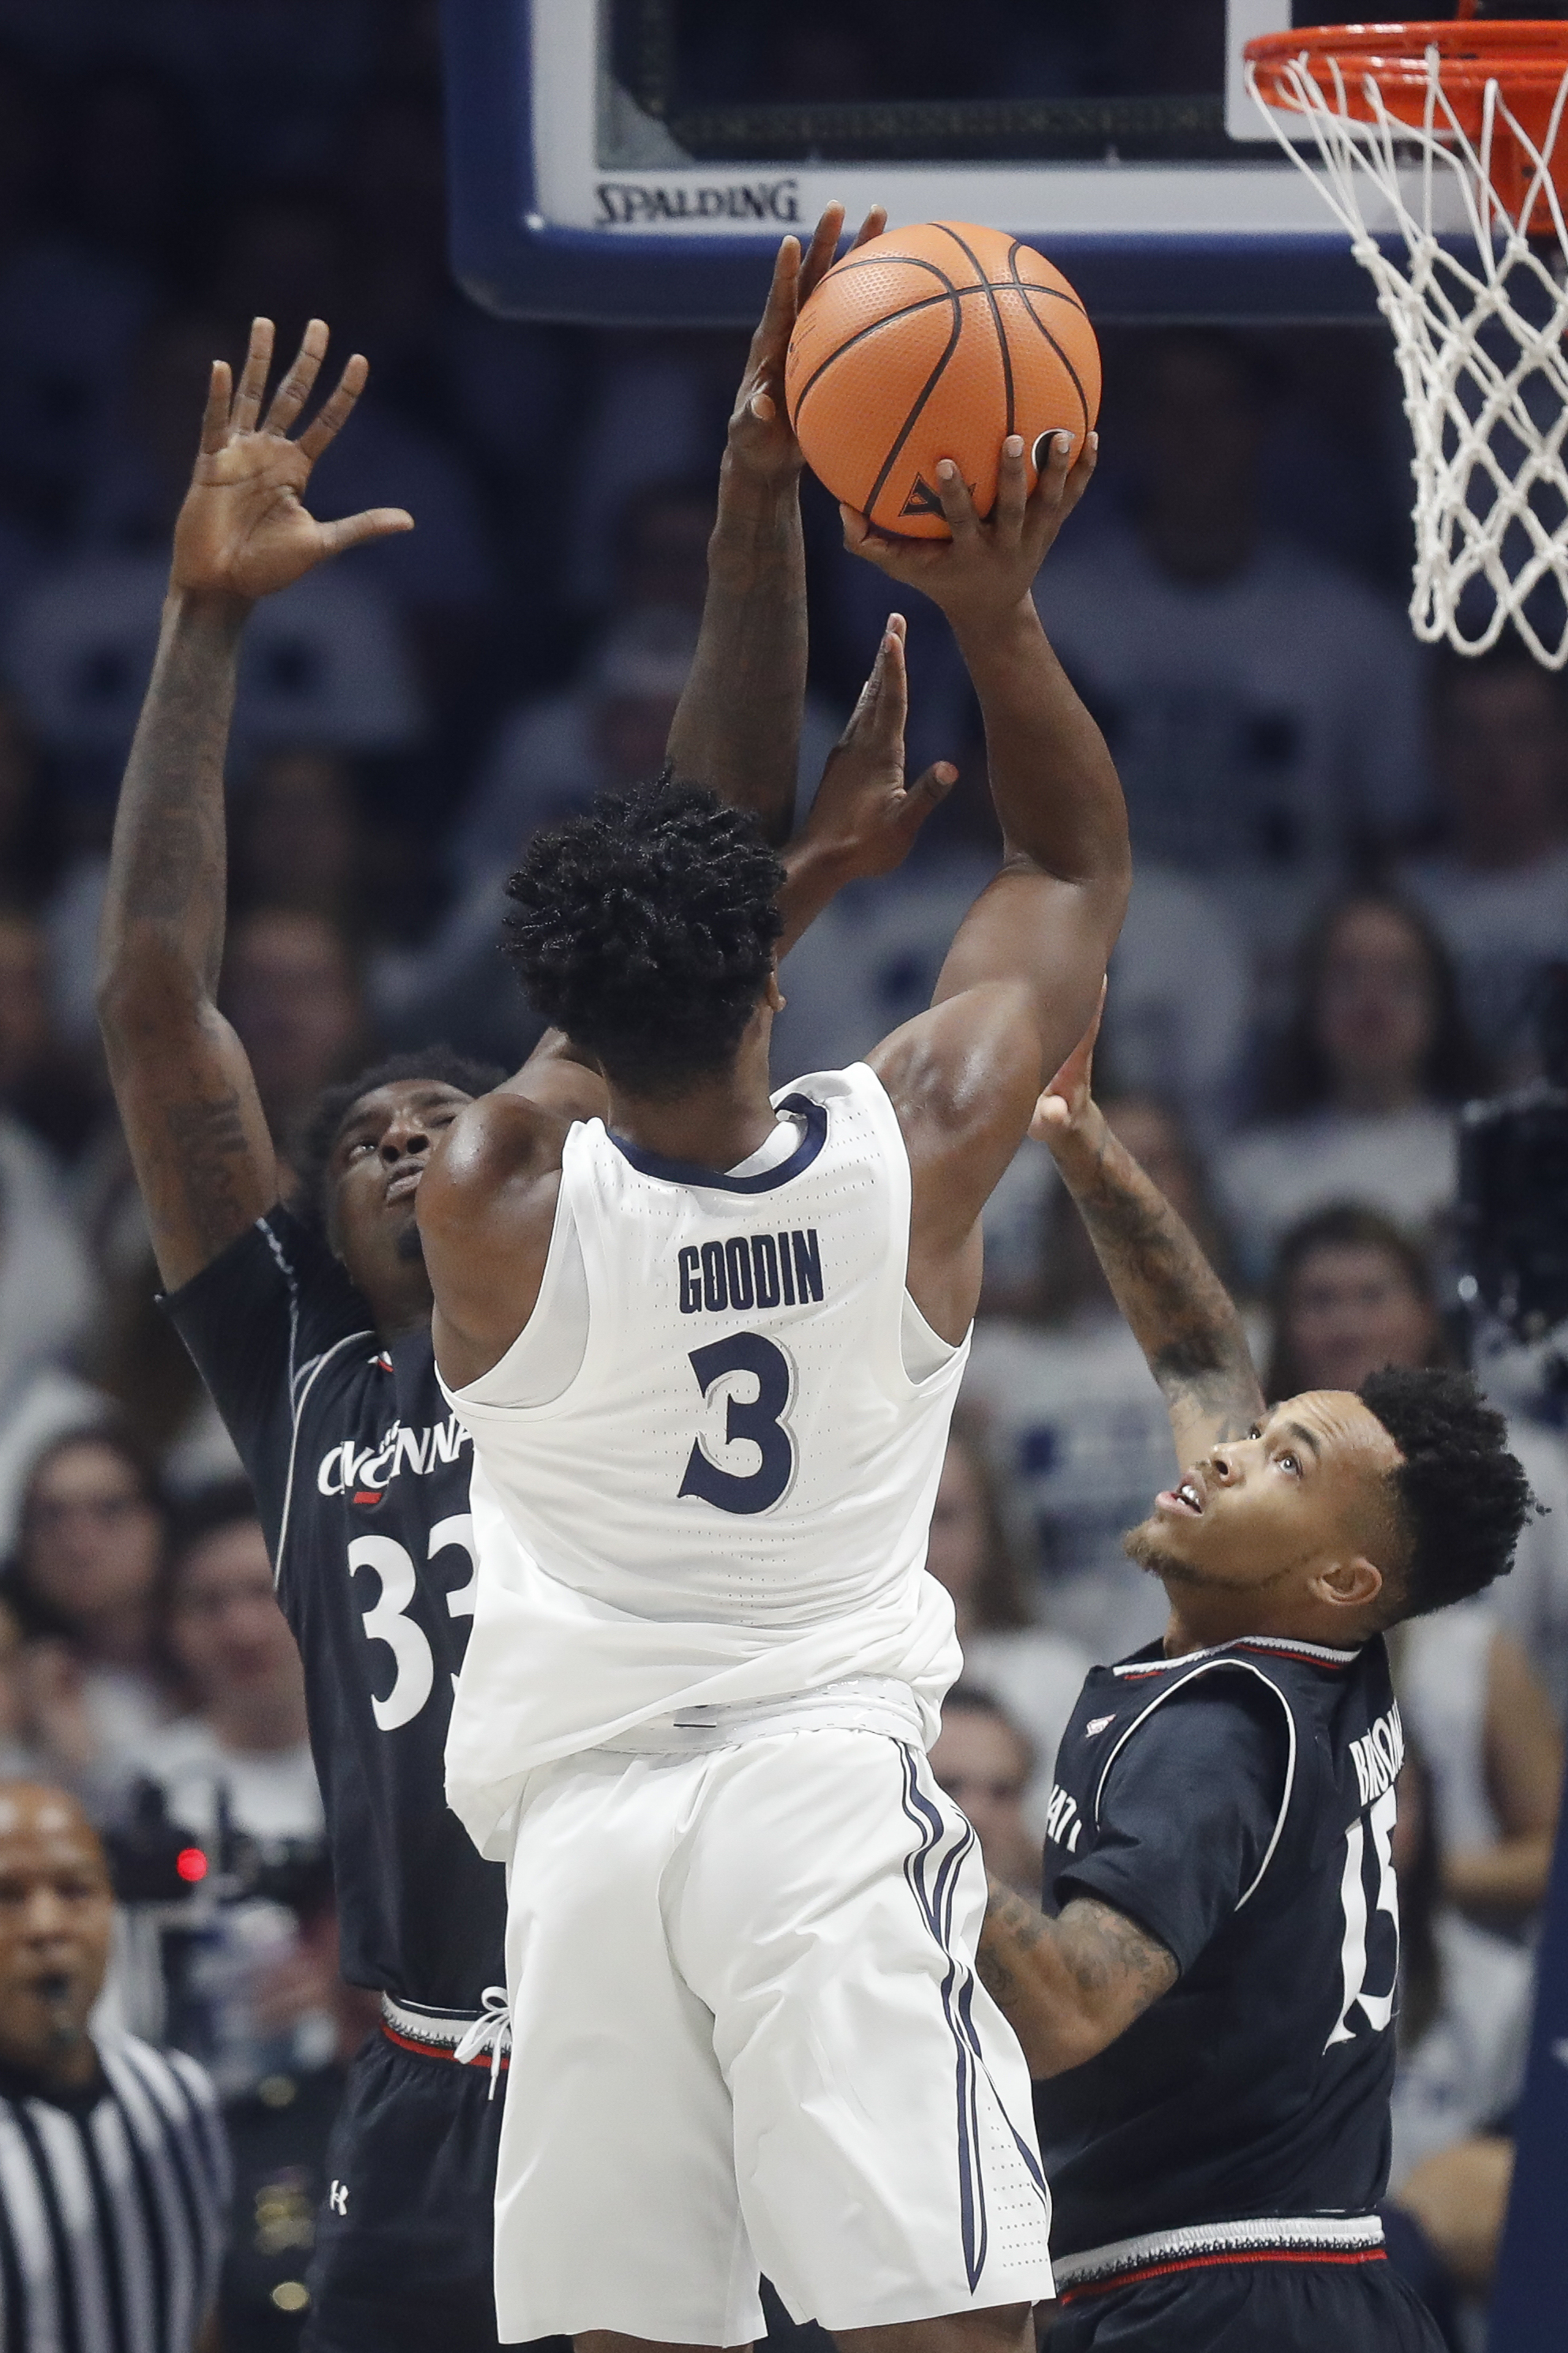 Xavier's Quentin Goodin (3) shoots against Cincinnati's Nysier Brooks (33) and Cane Broome (15) in the first half of an NCAA college basketball game, Saturday, Dec. 2, 2017, in Cincinnati. (AP Photo/John Minchillo)